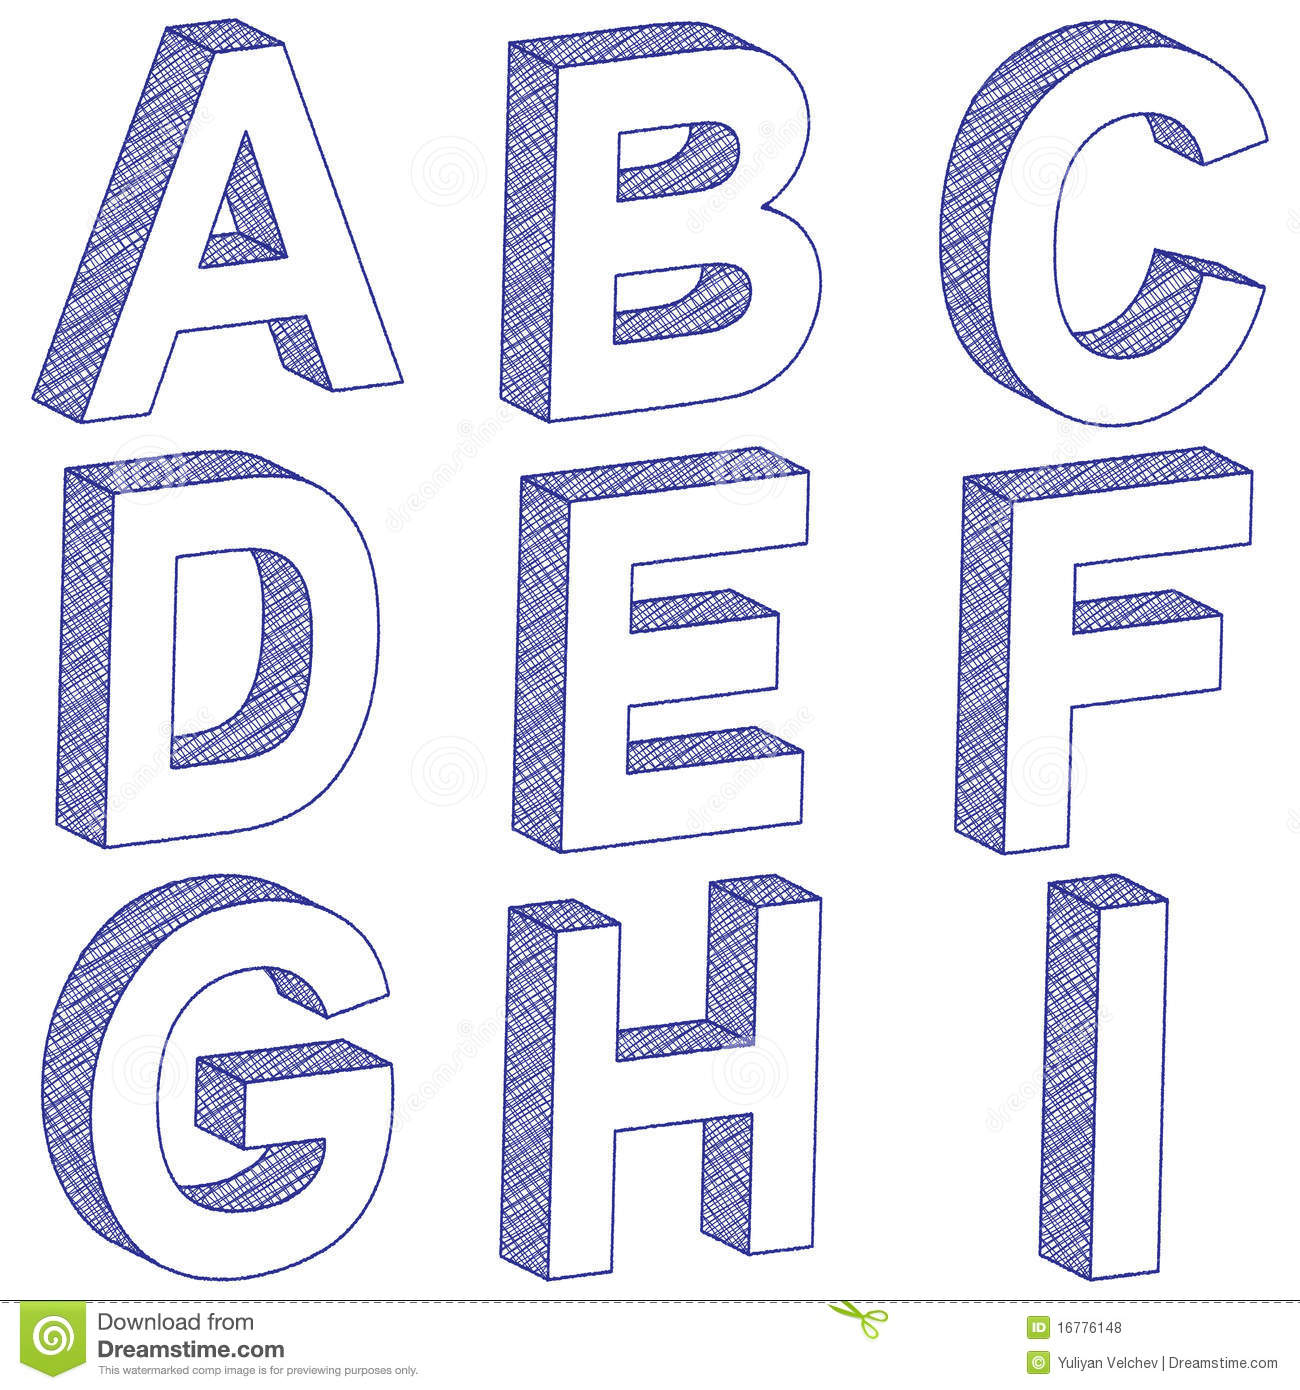 3D scratch letters from A to I on a white background. Vector illustration.